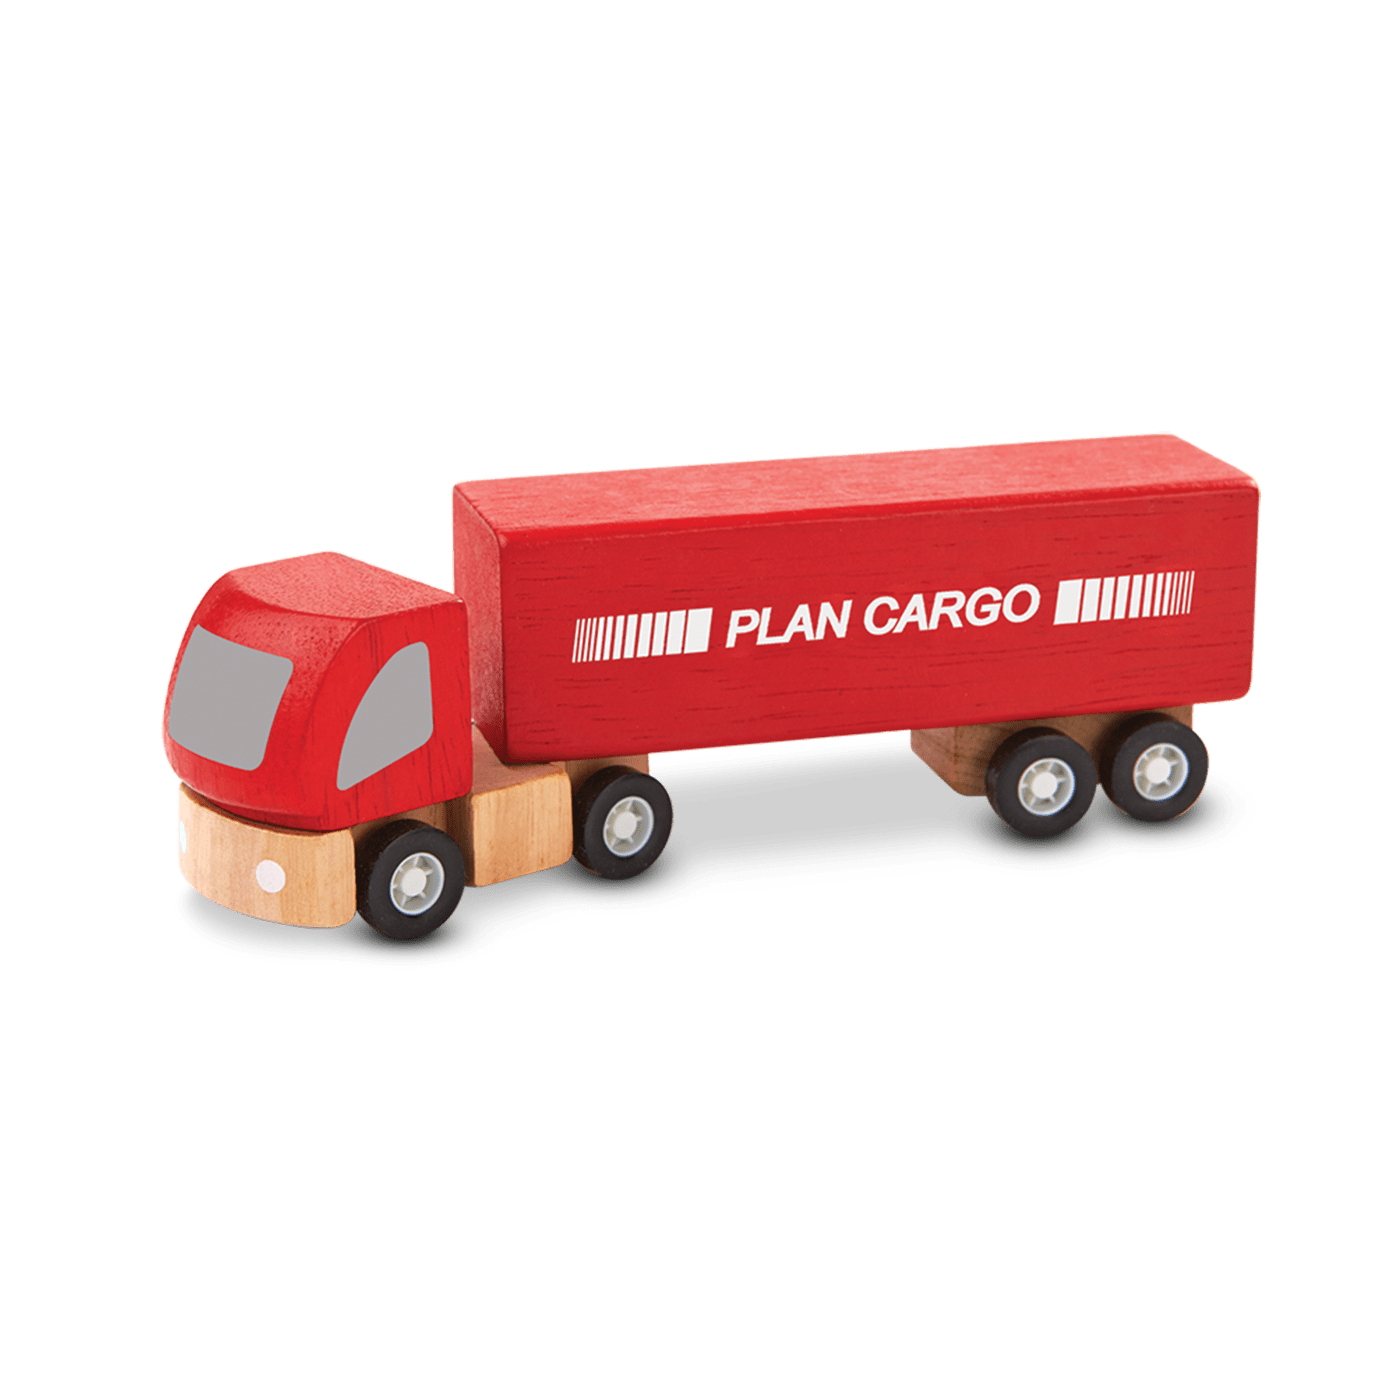 6006_PlanToys_CARGO_TRUCK_Pretend_Play_Imagination_Social_Language_and_Communications_Fine_Motor_3yrs_Wooden_toys_Education_toys_Safety_Toys_Non-toxic_0.png